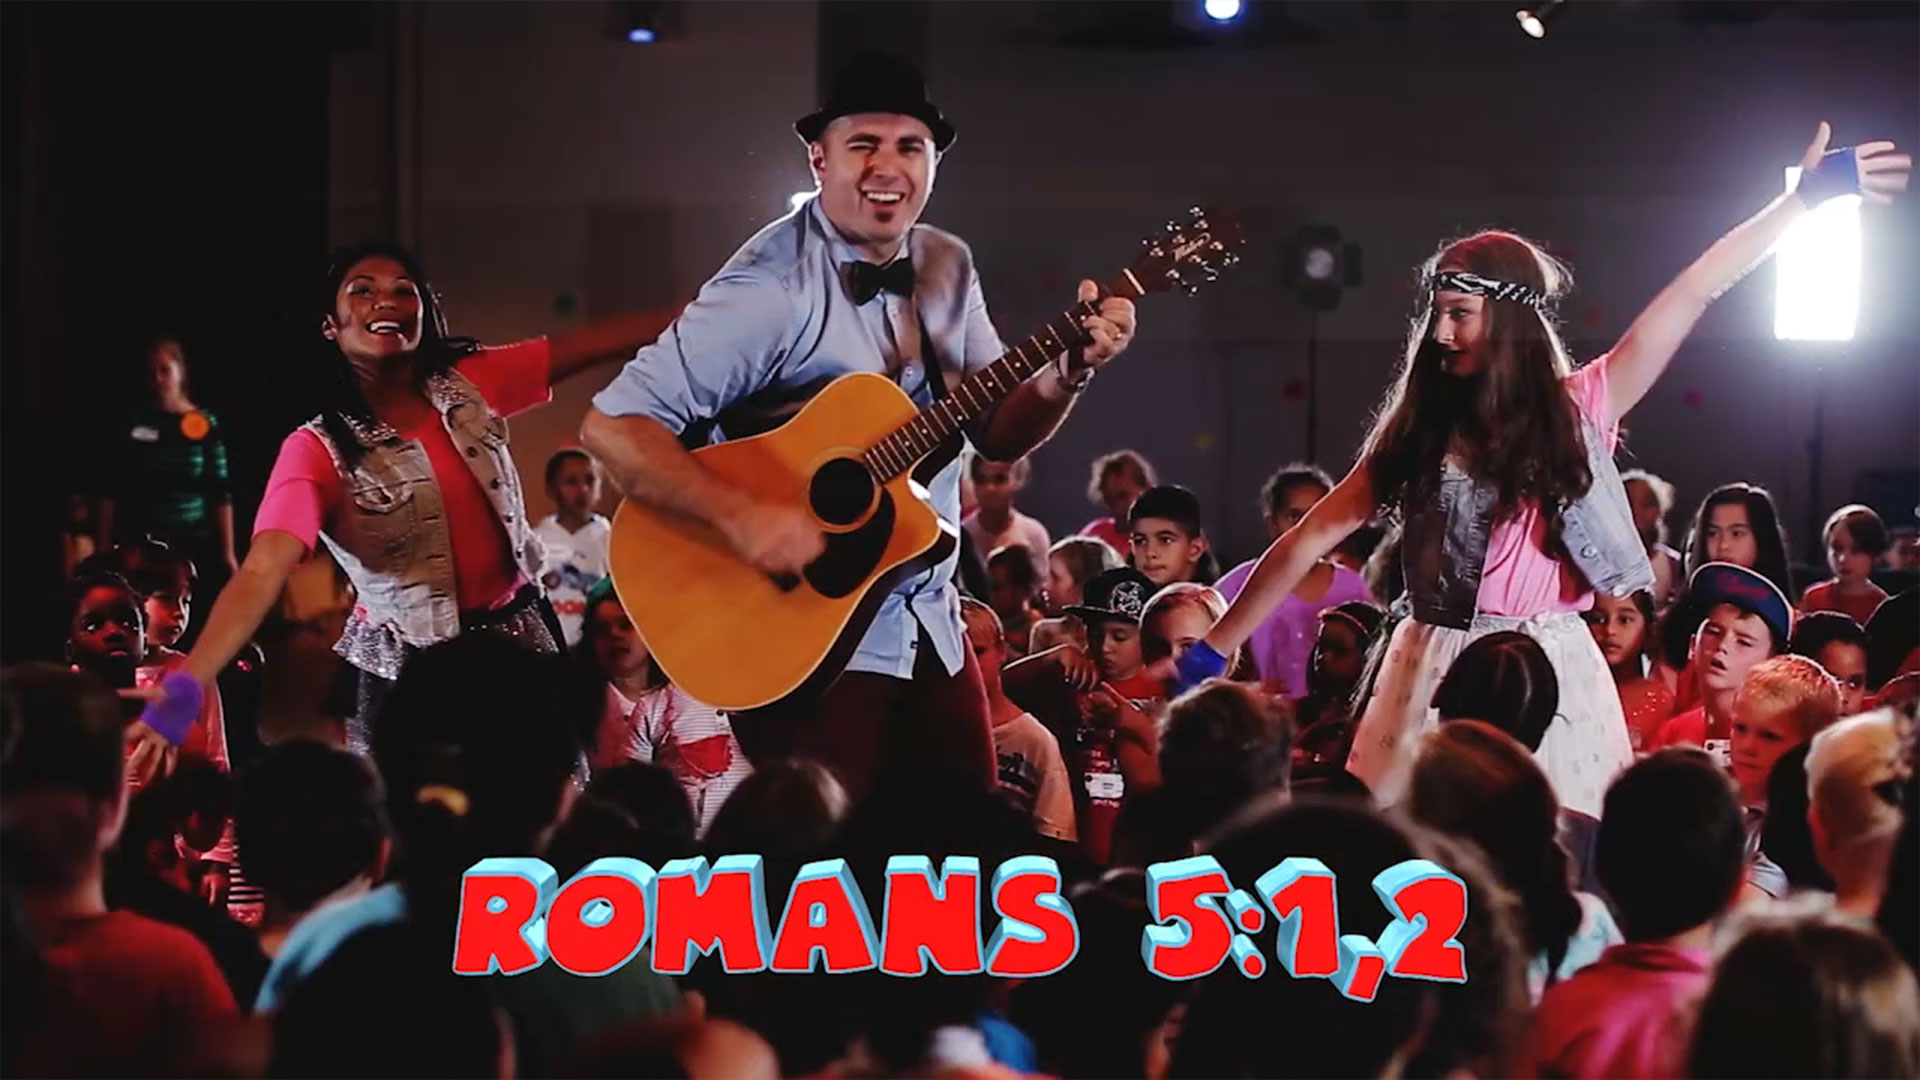 Hk bw ep01 faith romans 5 1 2 preview image